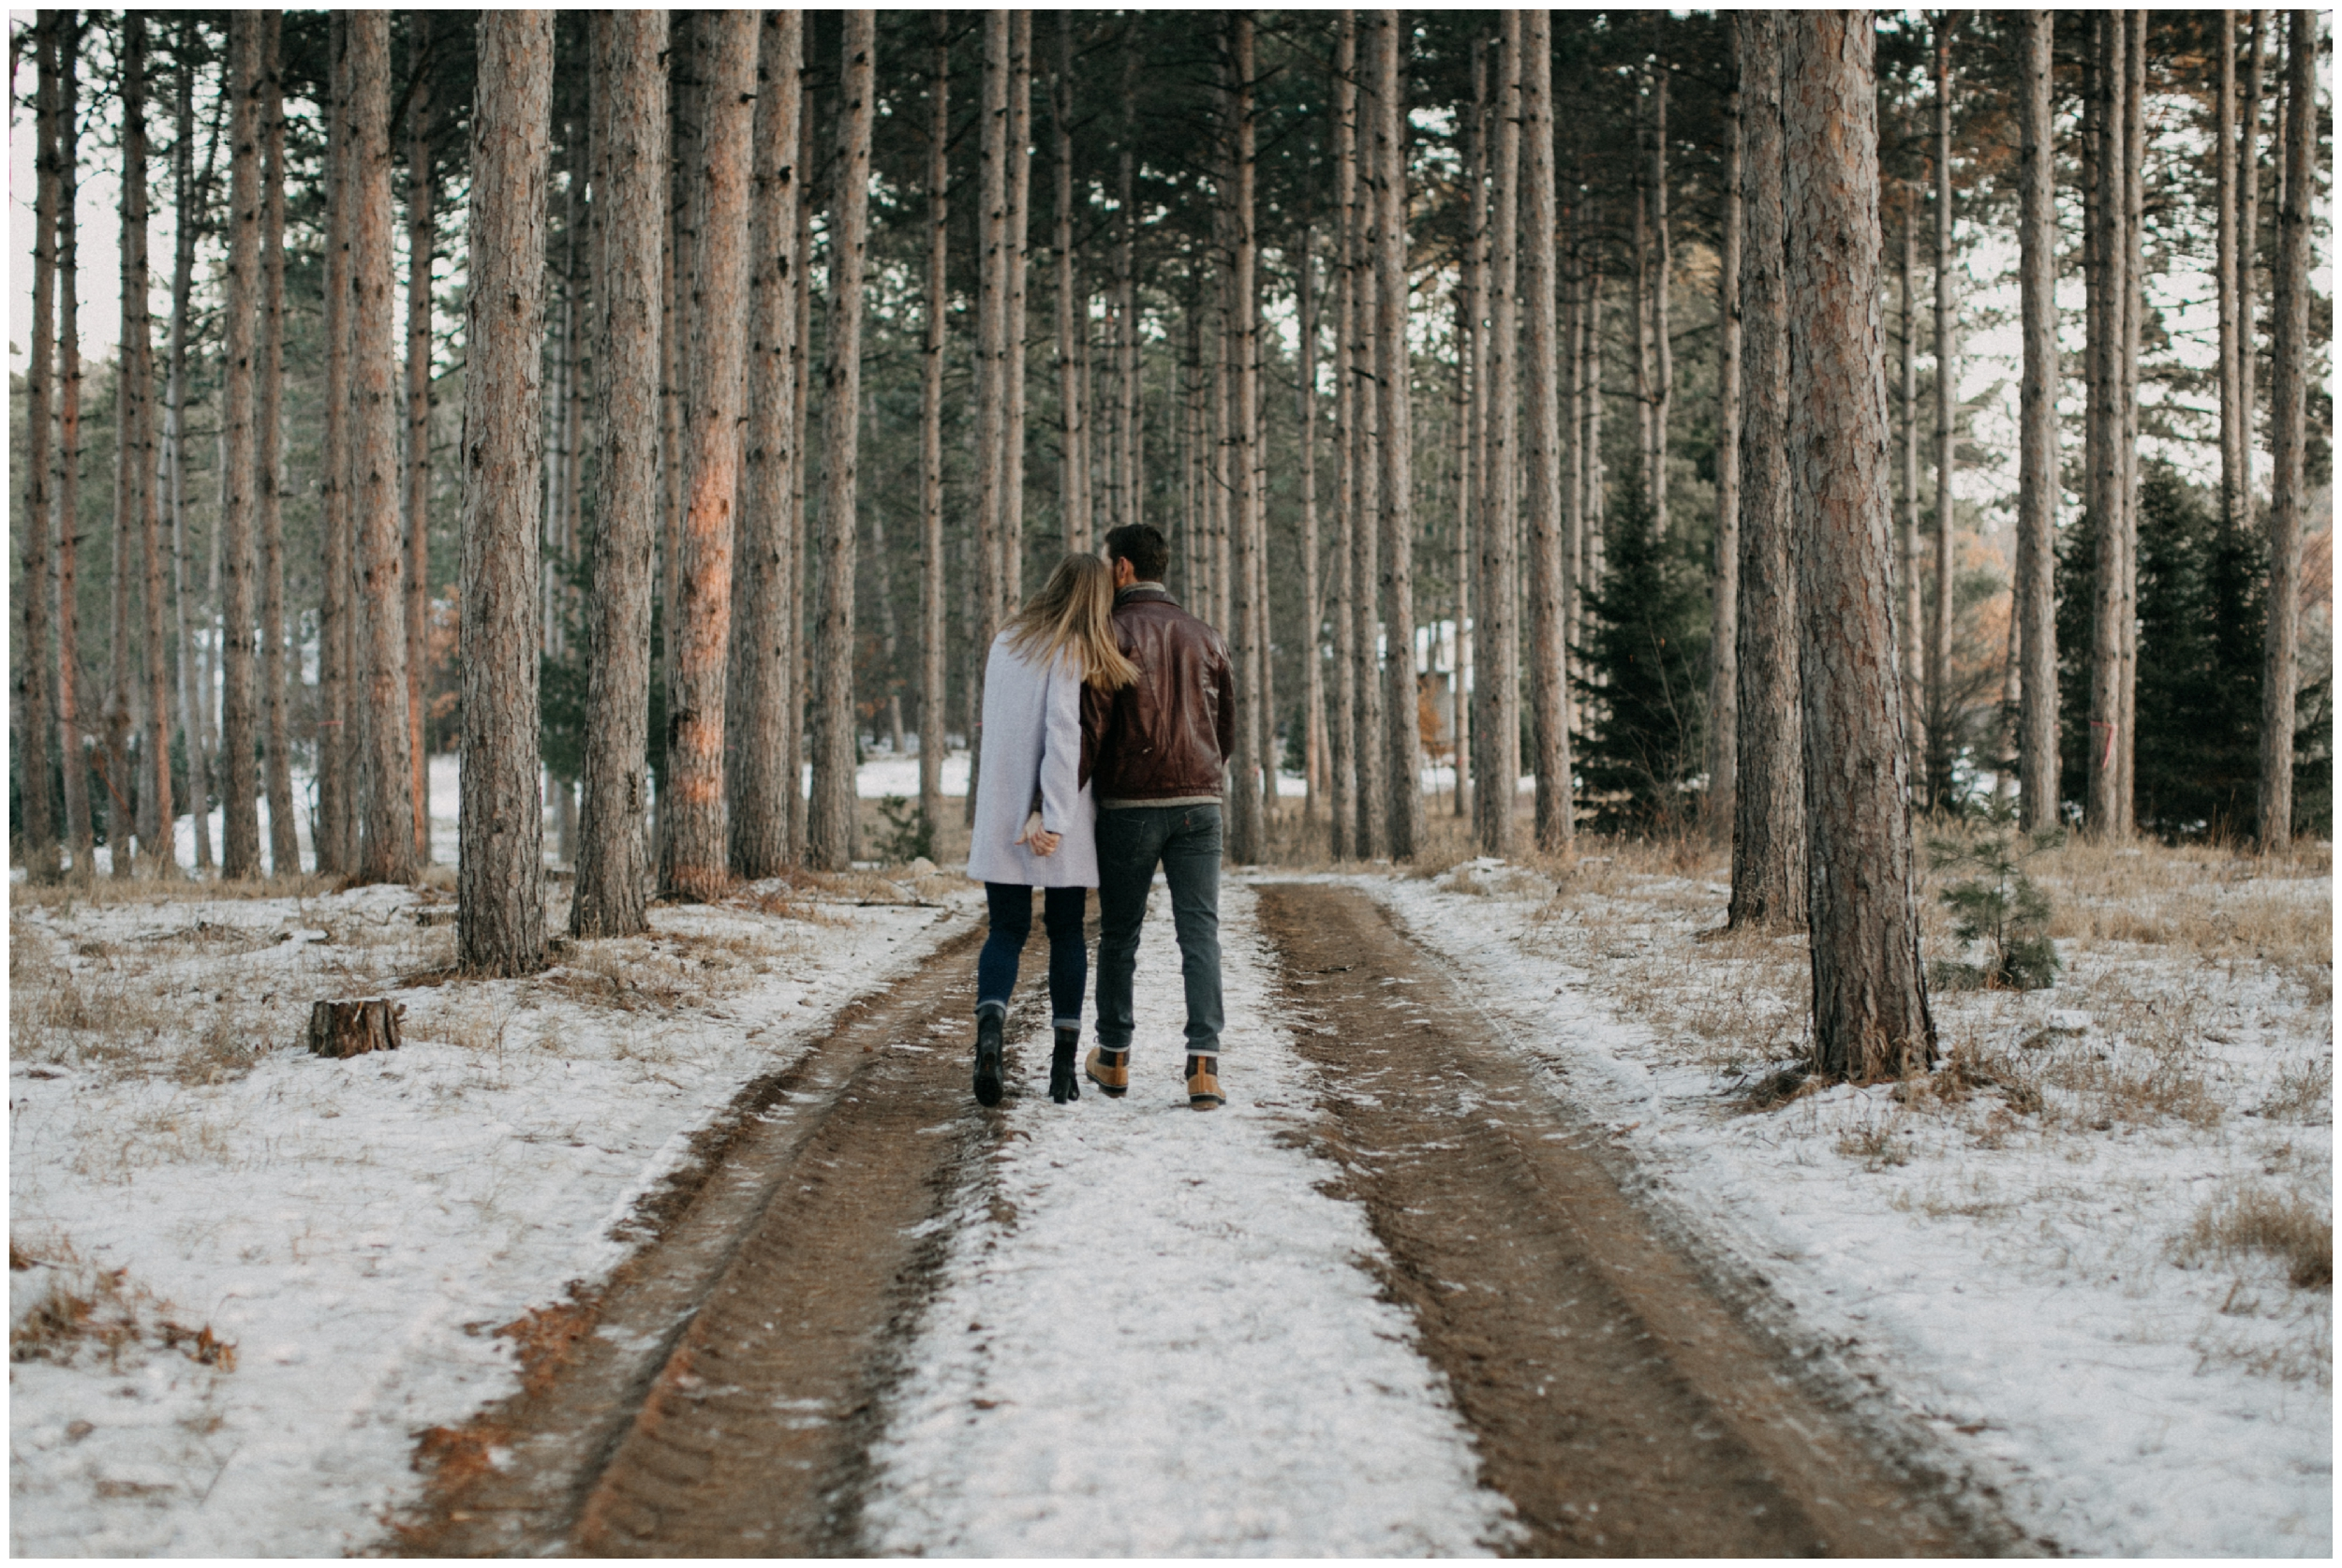 Pine Tree forest engagement session in MN by Britt DeZeeuw